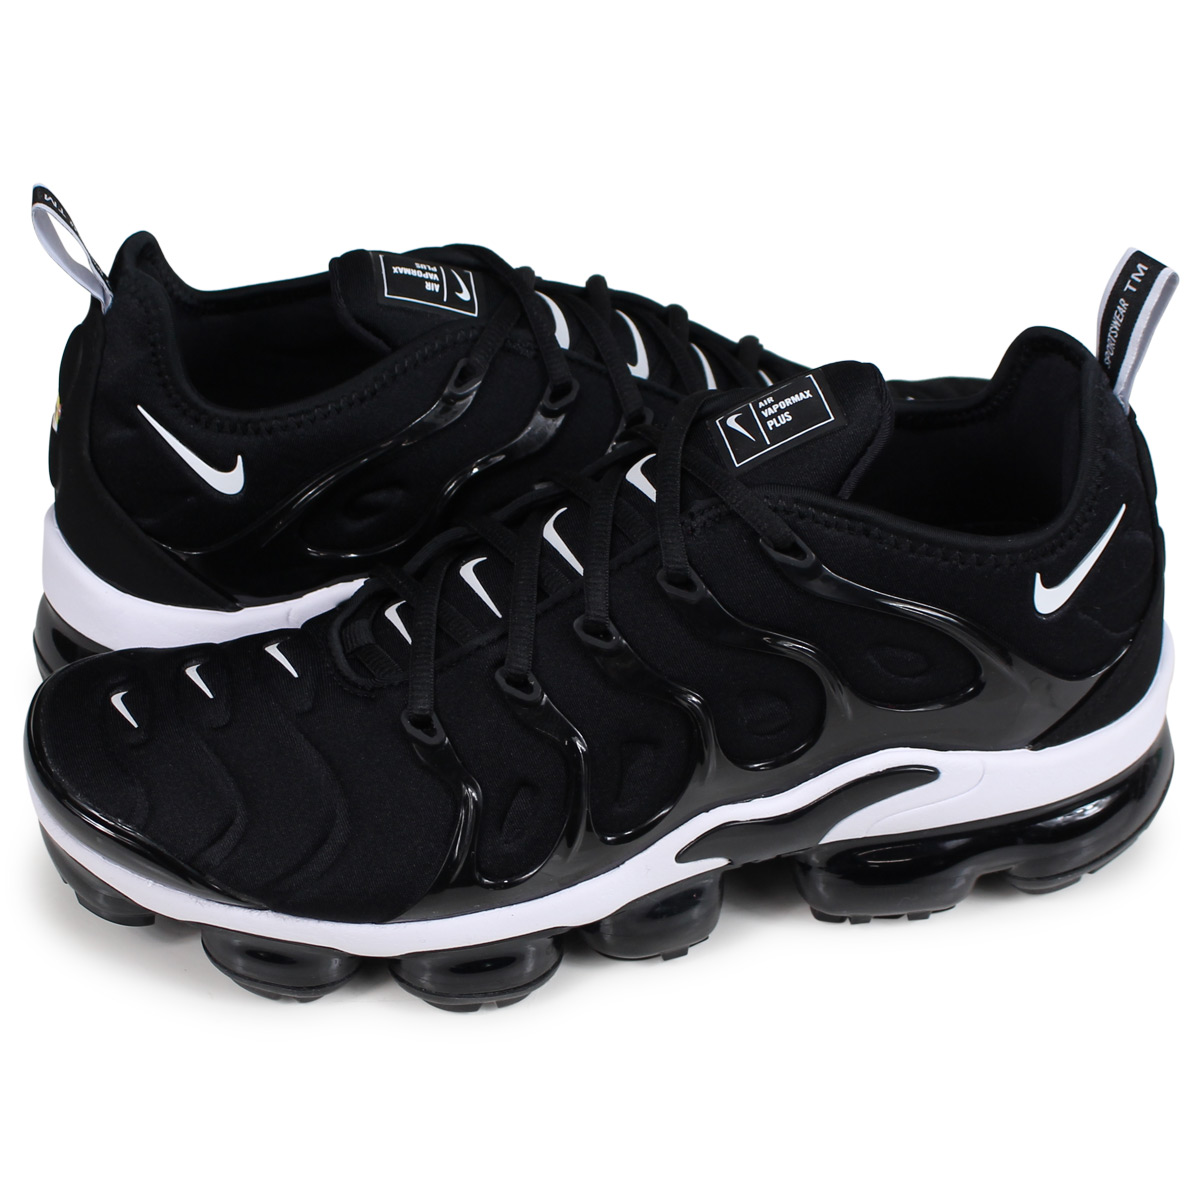 68e3d333964  brand NIKE getting high popularity from sneakers freak . I renew super  technology Air Max Plus ...